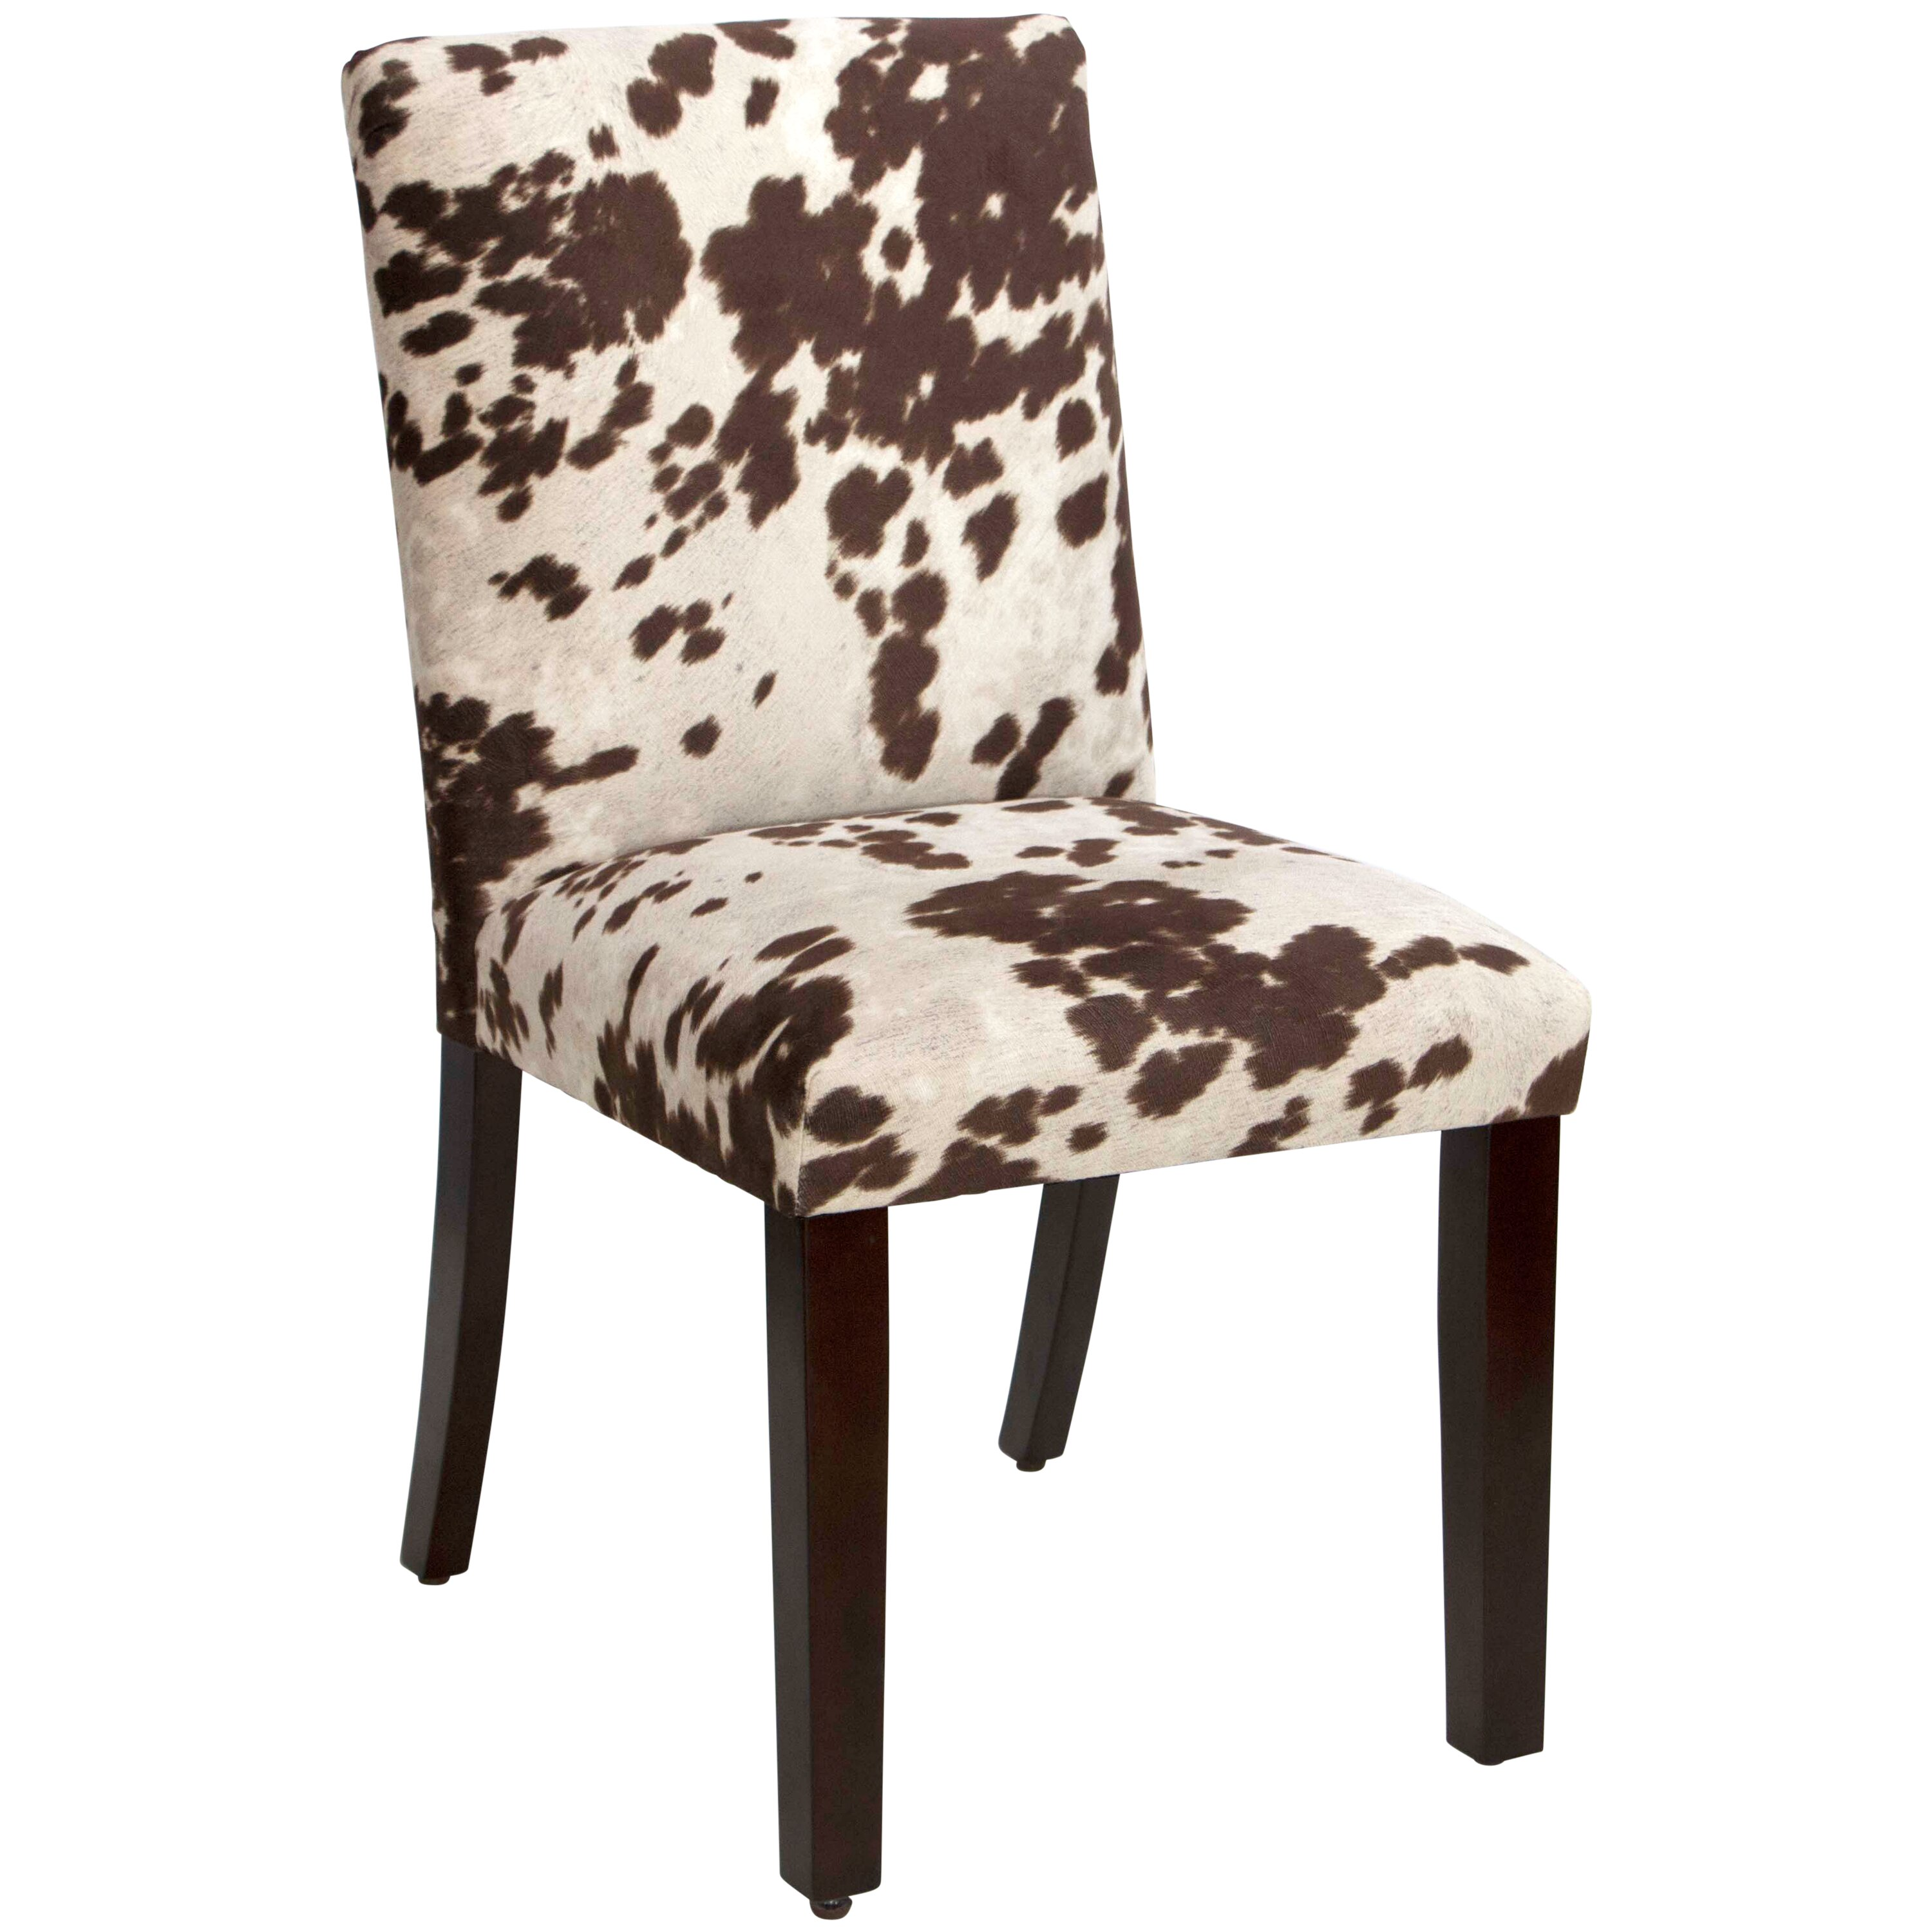 Upholstered Dining Chair Parsons Armless Brown Design: Trent Austin Design Bodgers Parsons Upholstered Chair